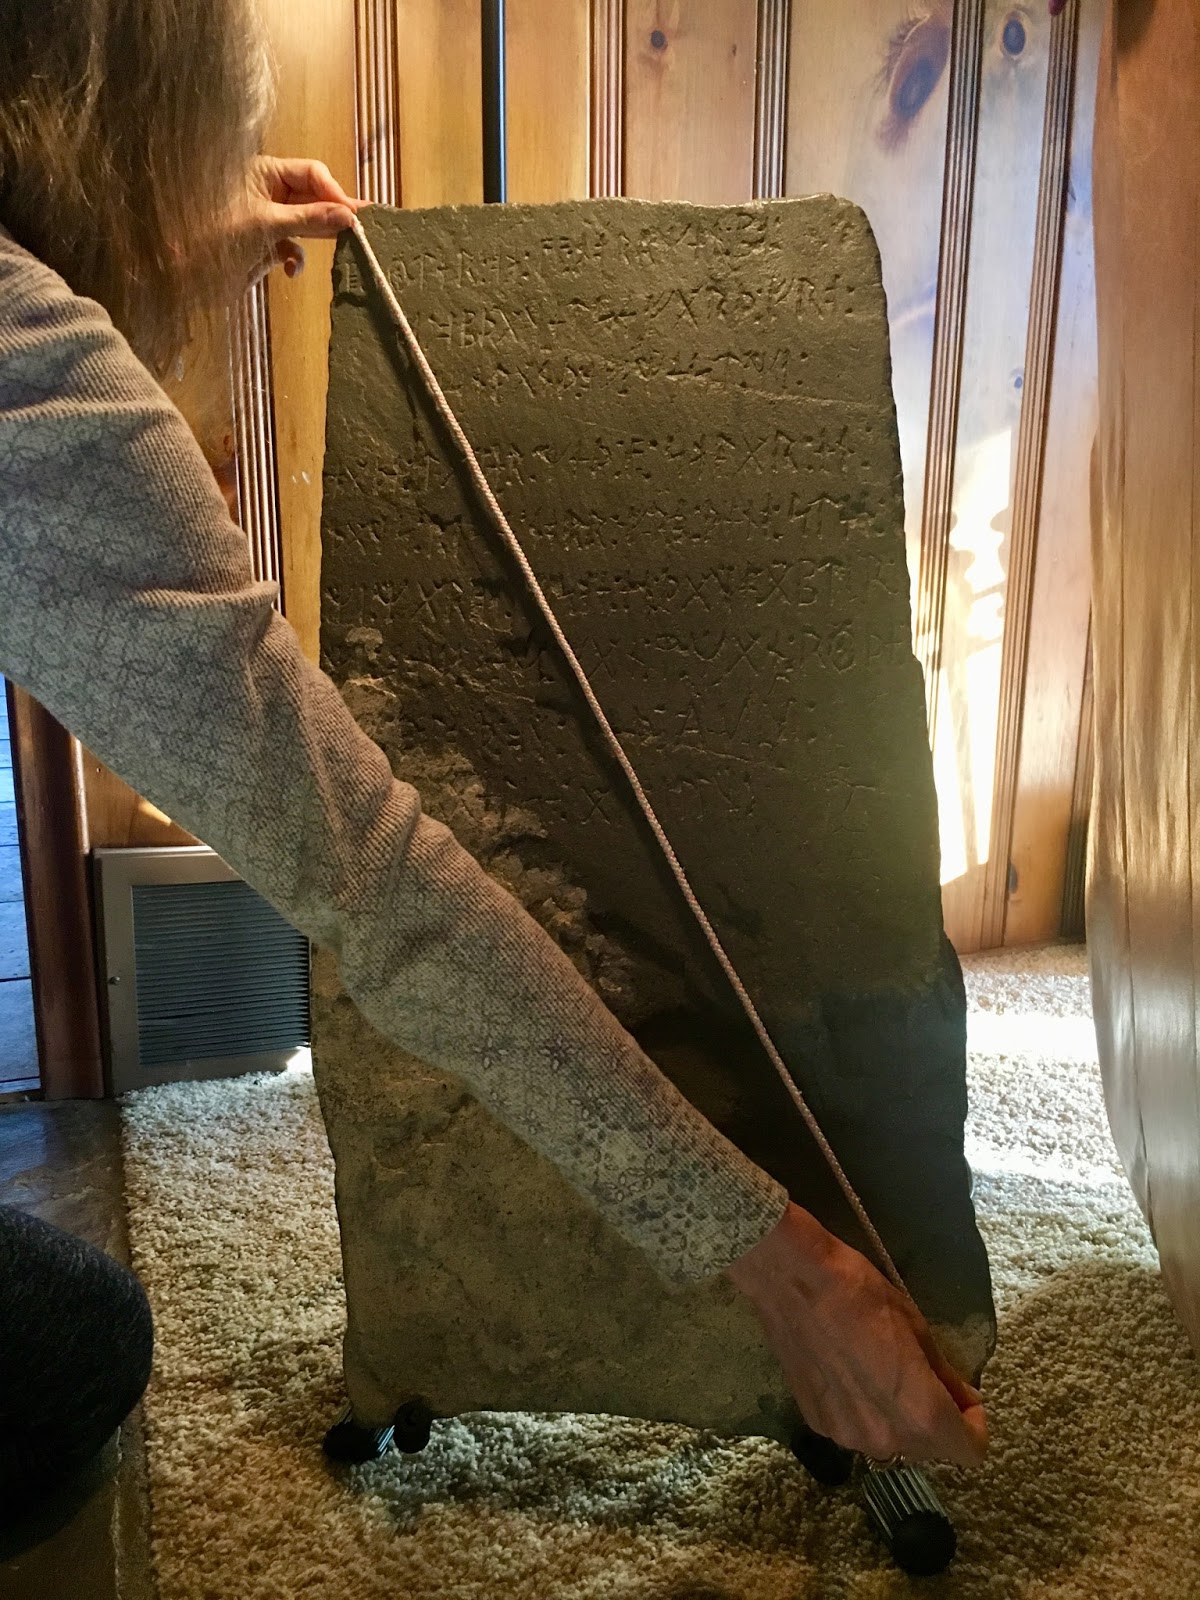 Scott wolter answers proof positive the kensington rune stone is when measured down the split side of the kensington rune stone it measures just over an inch longer than a megalithic yard of 272 feet malvernweather Image collections